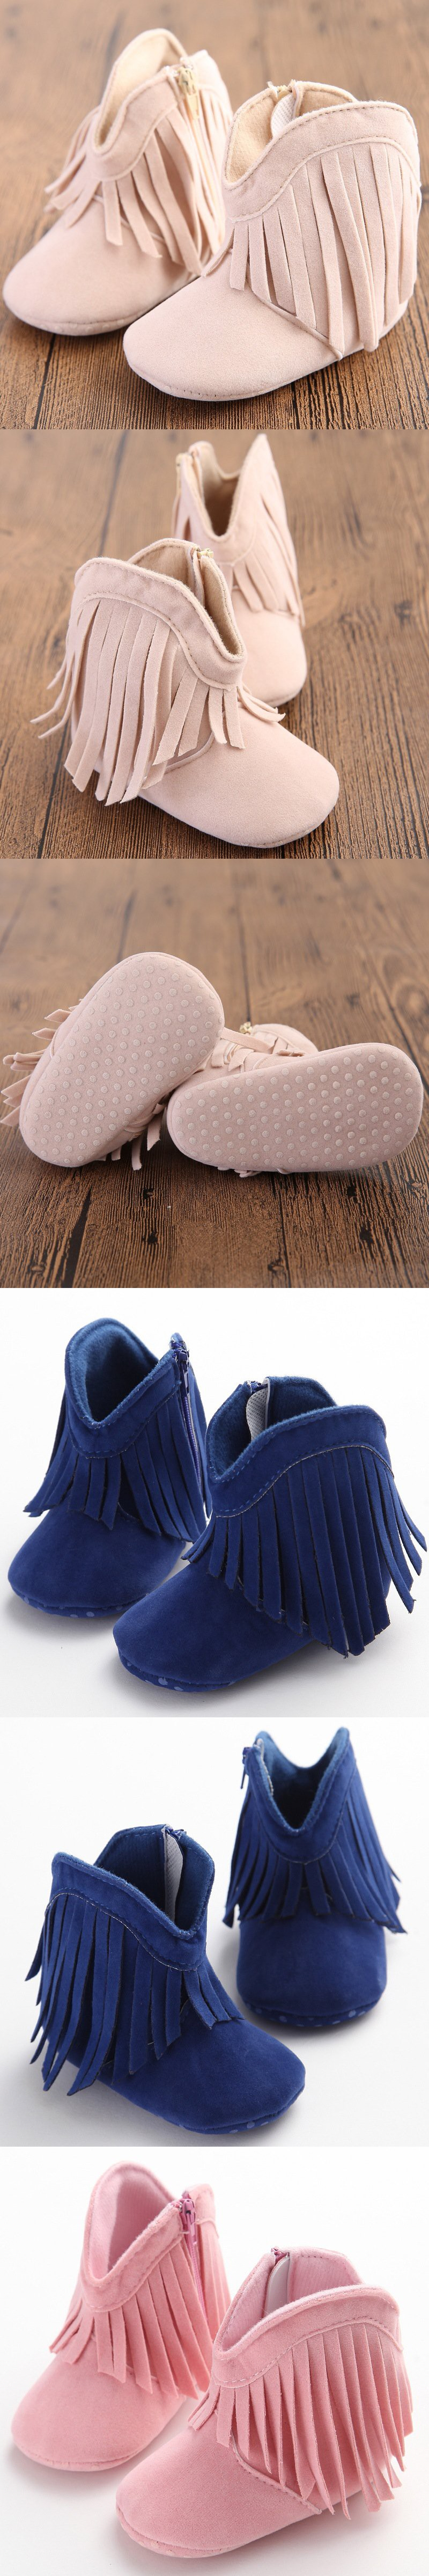 e05d0f5fa627 Moccasin Moccs Newborn Baby Girl Boy Kids Prewalker Solid Fringe Shoes  Infant Toddler Soft Soled Anti-slip Boots Booties 0-1Year  4.12